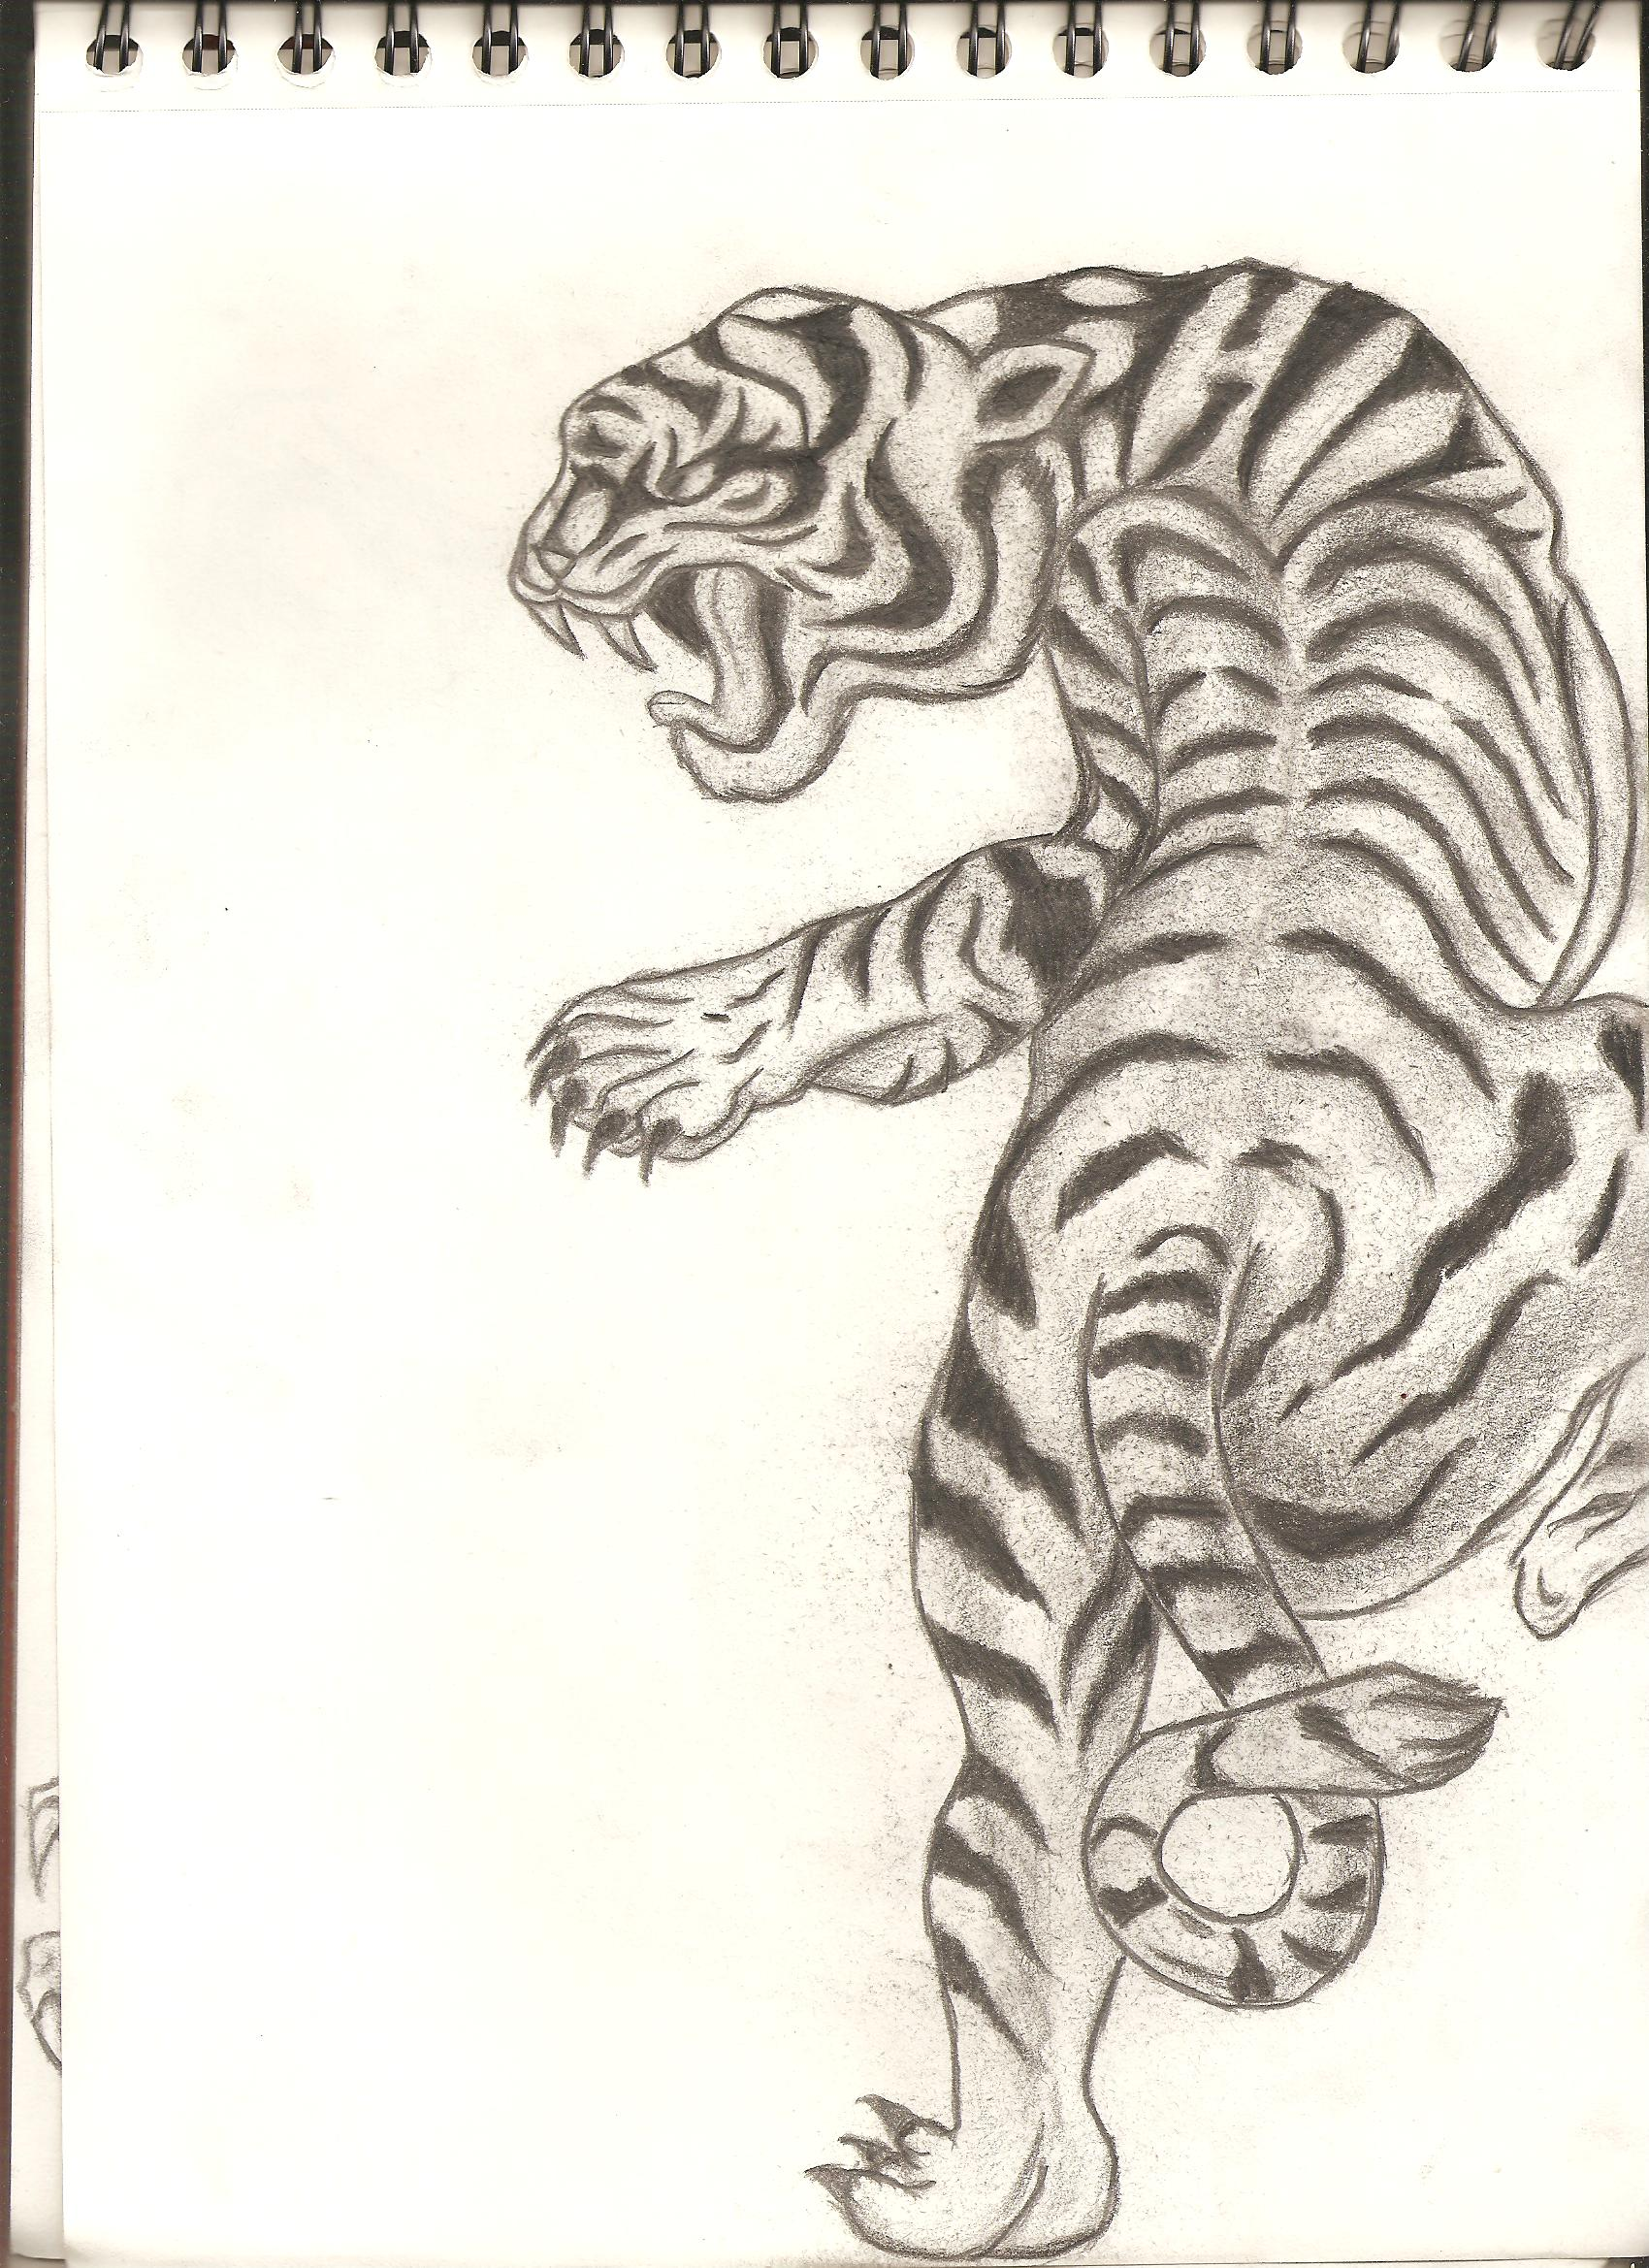 classic japanese style tiger by dbz fanatic1 on deviantart classic japanese style tiger by dbz fanatic1